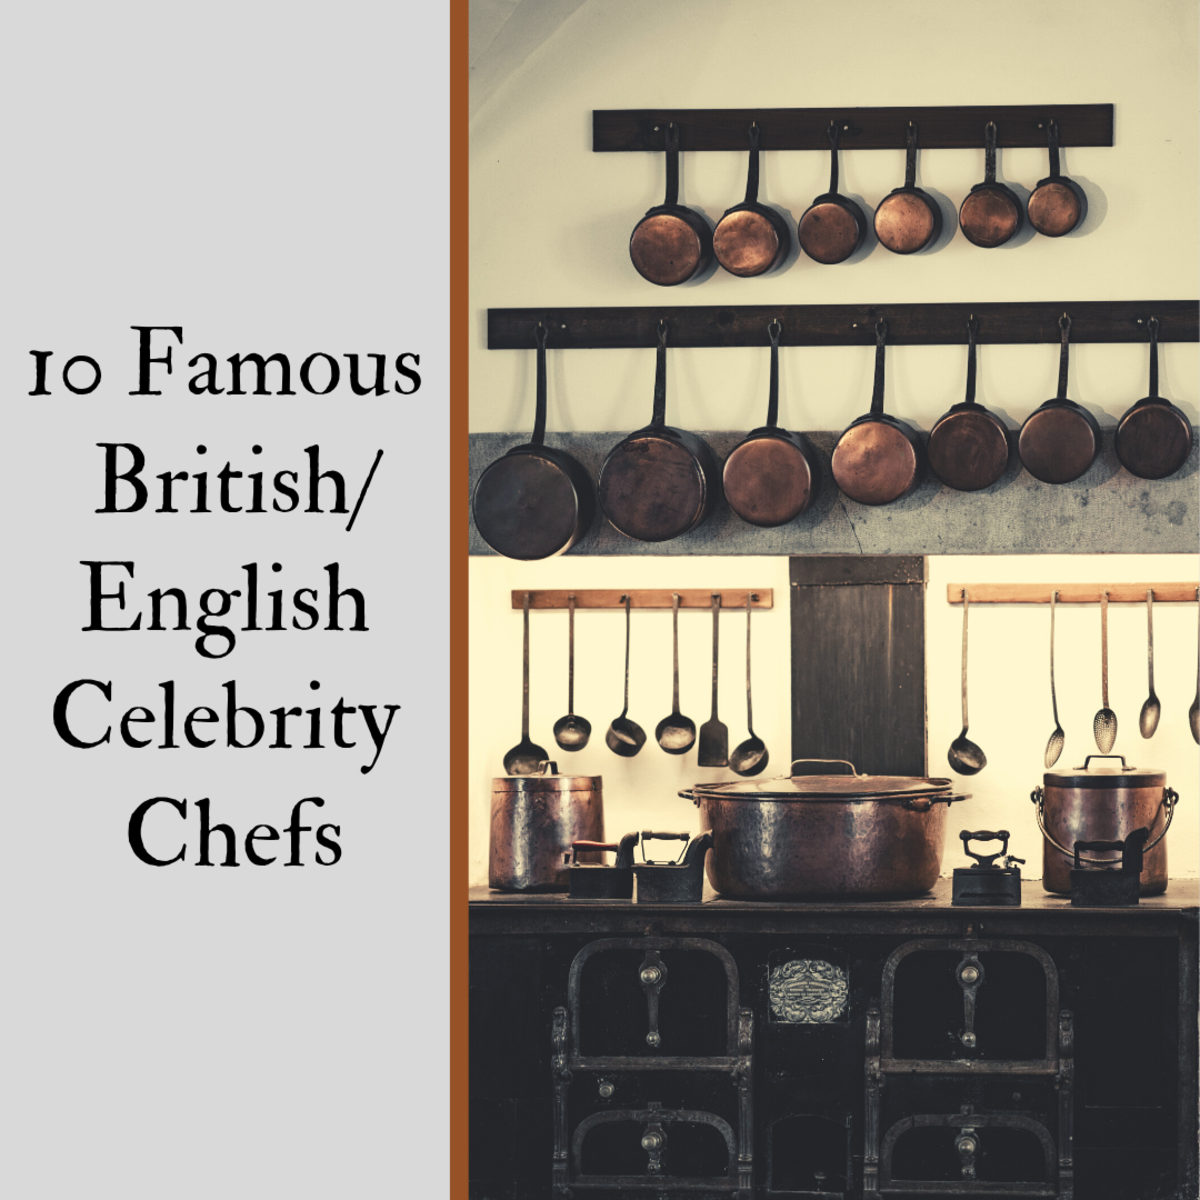 These famous celebrities can teach you a lot about cooking!